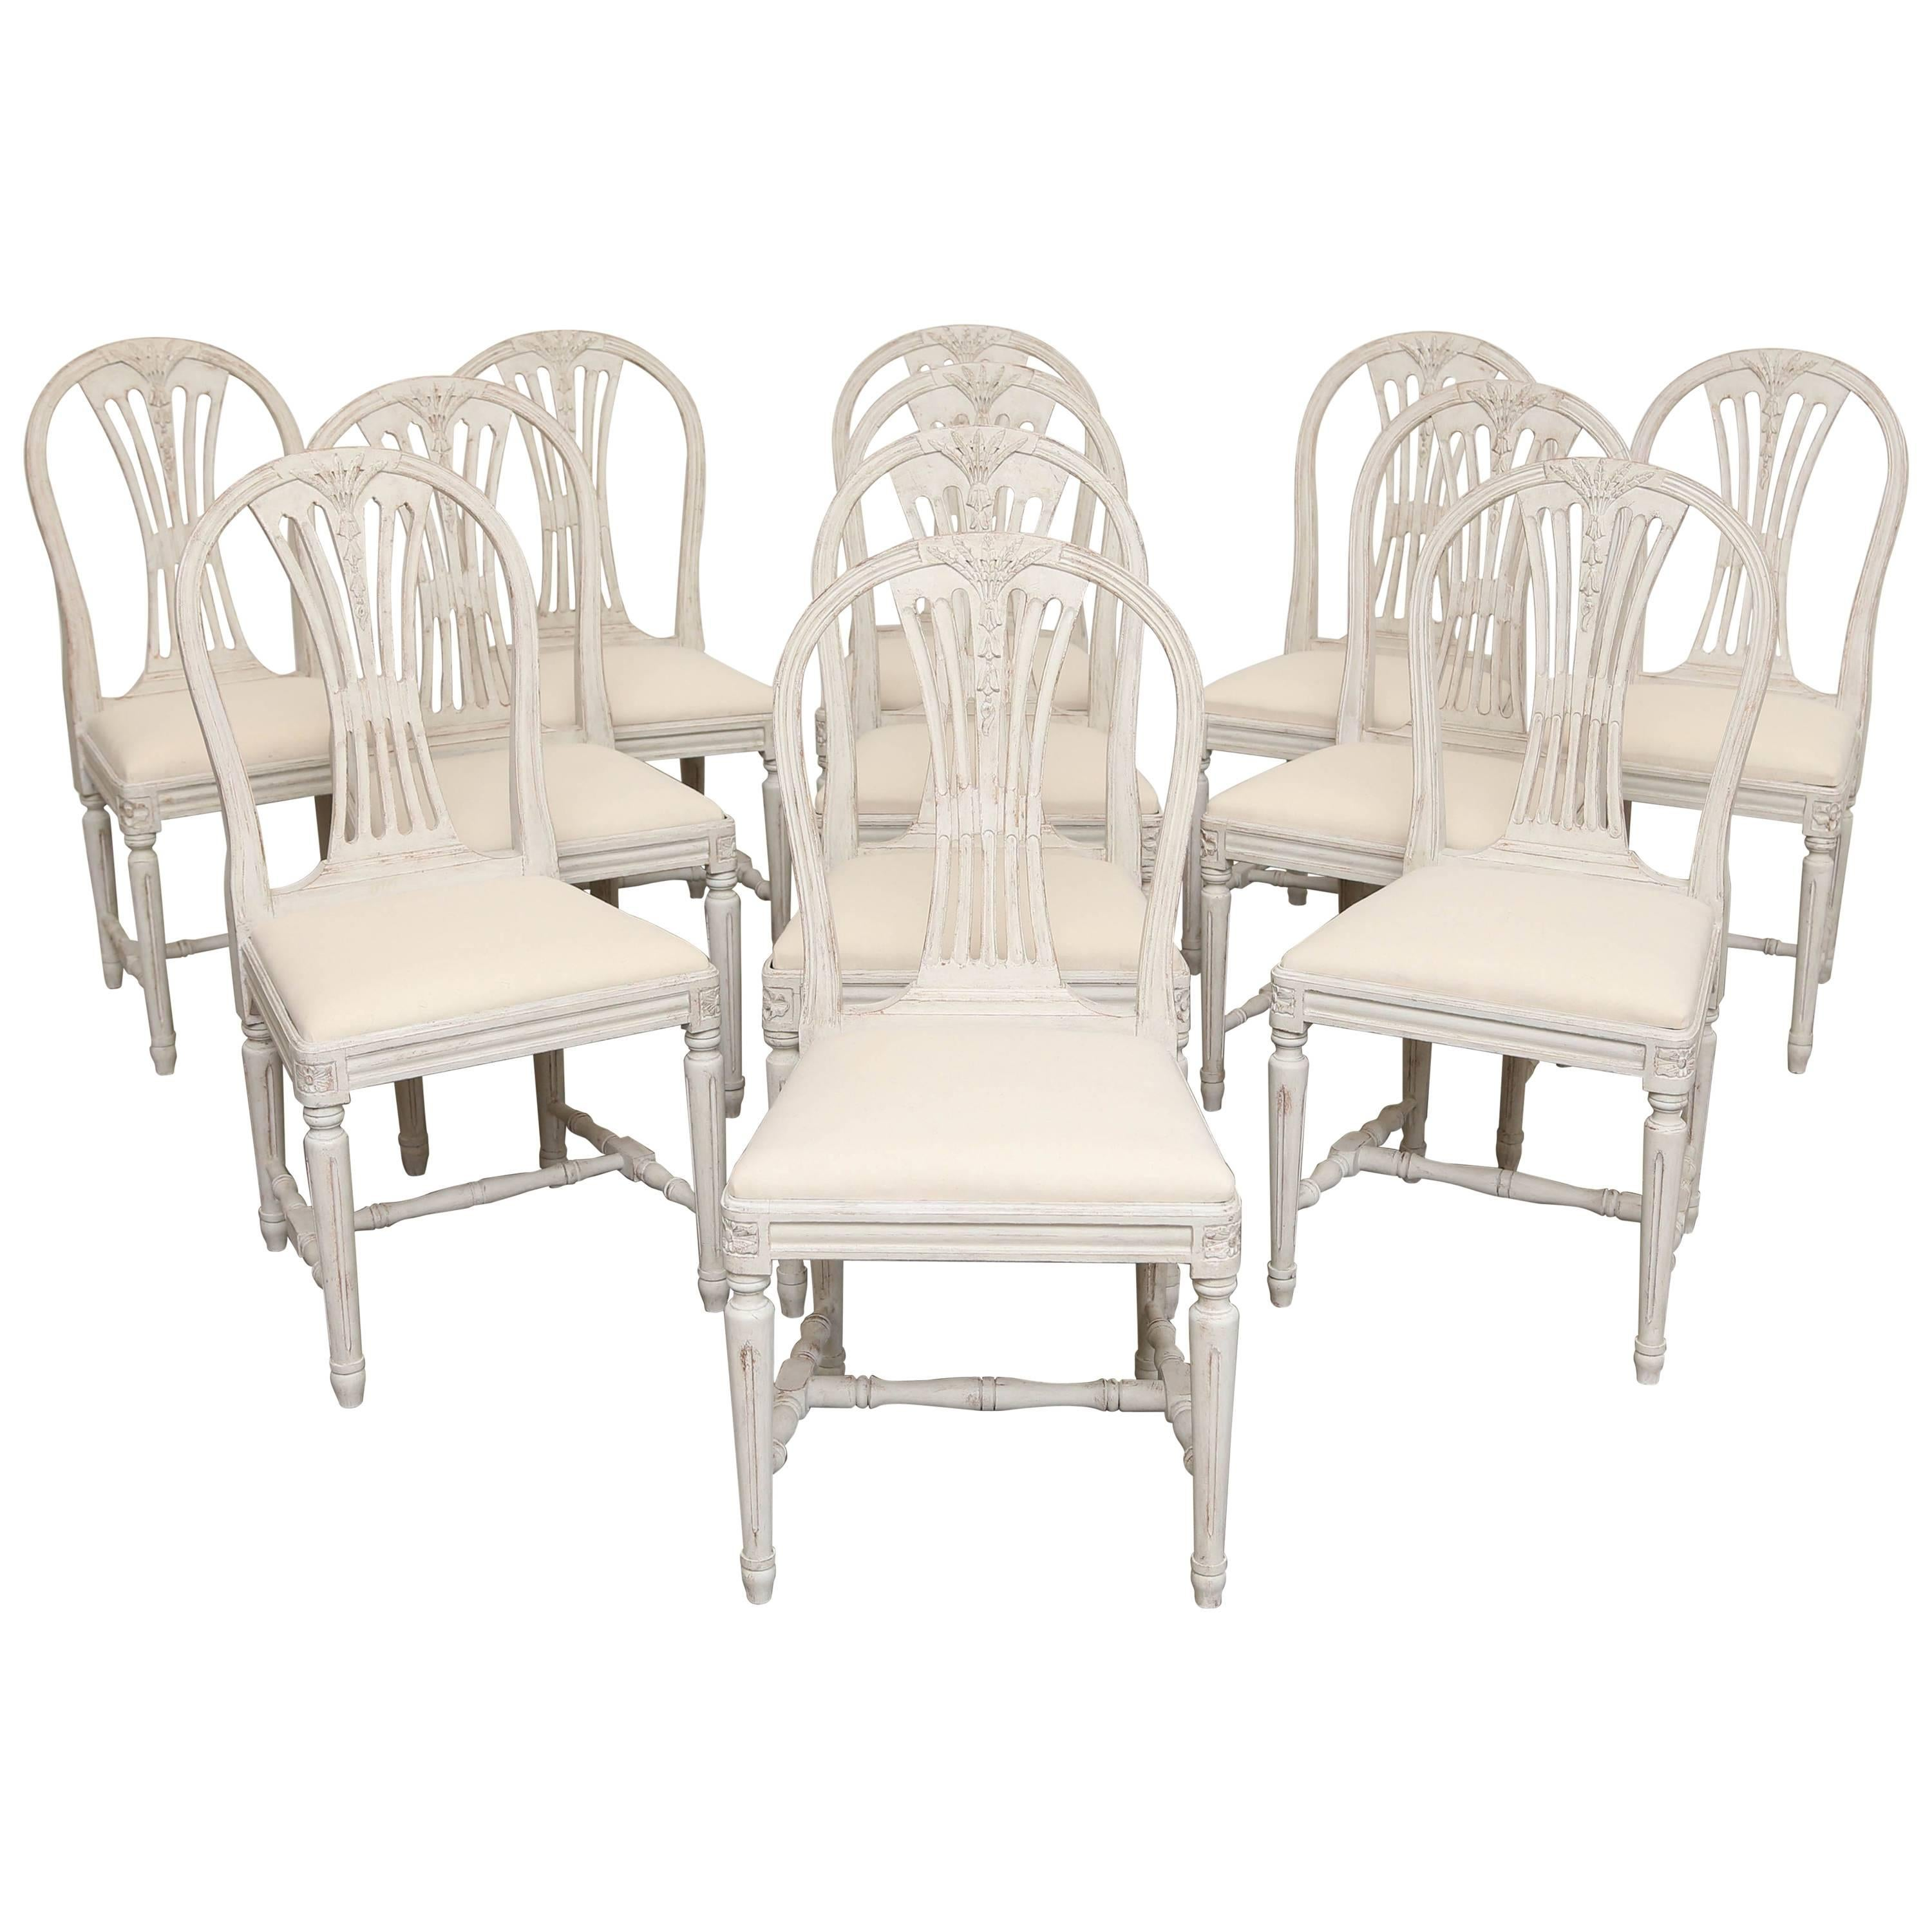 Set Of 12 Painted Gustavian Style Dining Chairs Early 20th Century For Sale